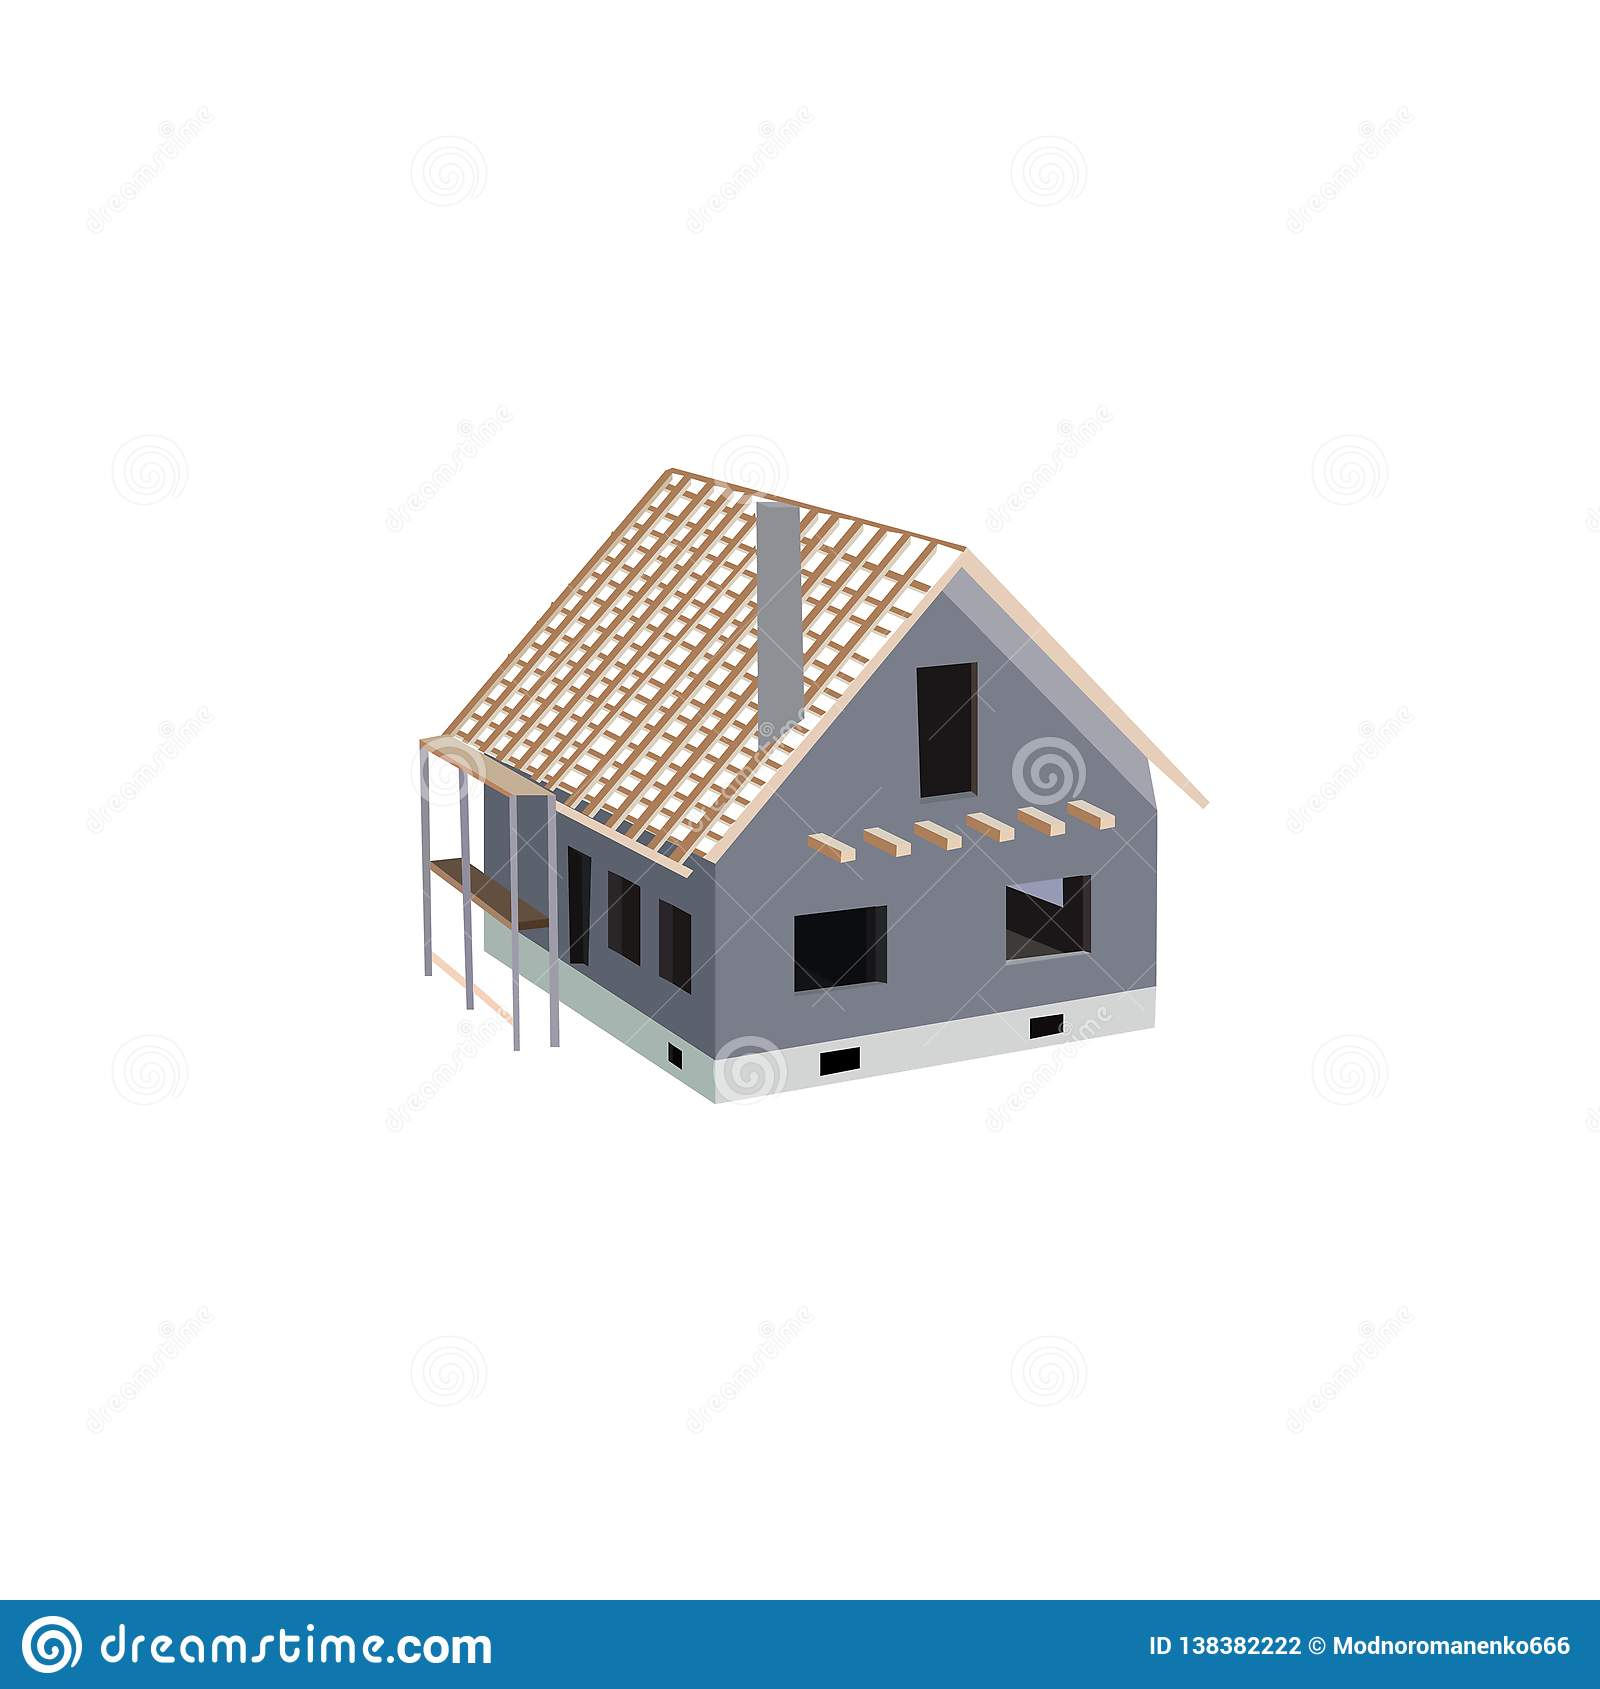 Building works and unfinished house for privat life